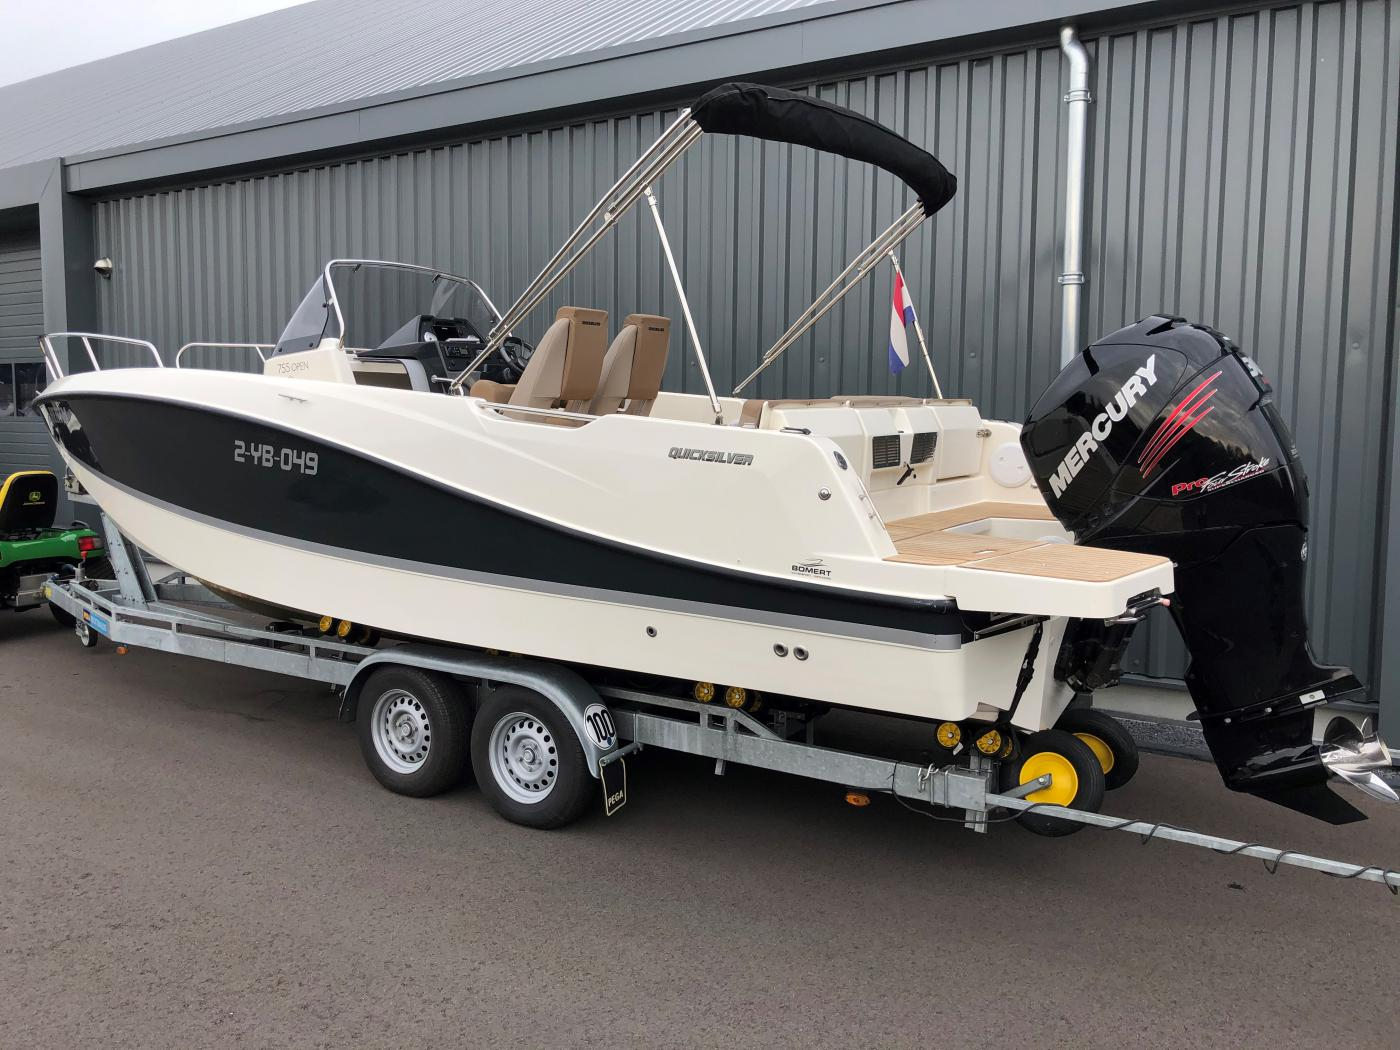 Te koop Quicksilver  755 Open Consoleboten | Bomert Watersport